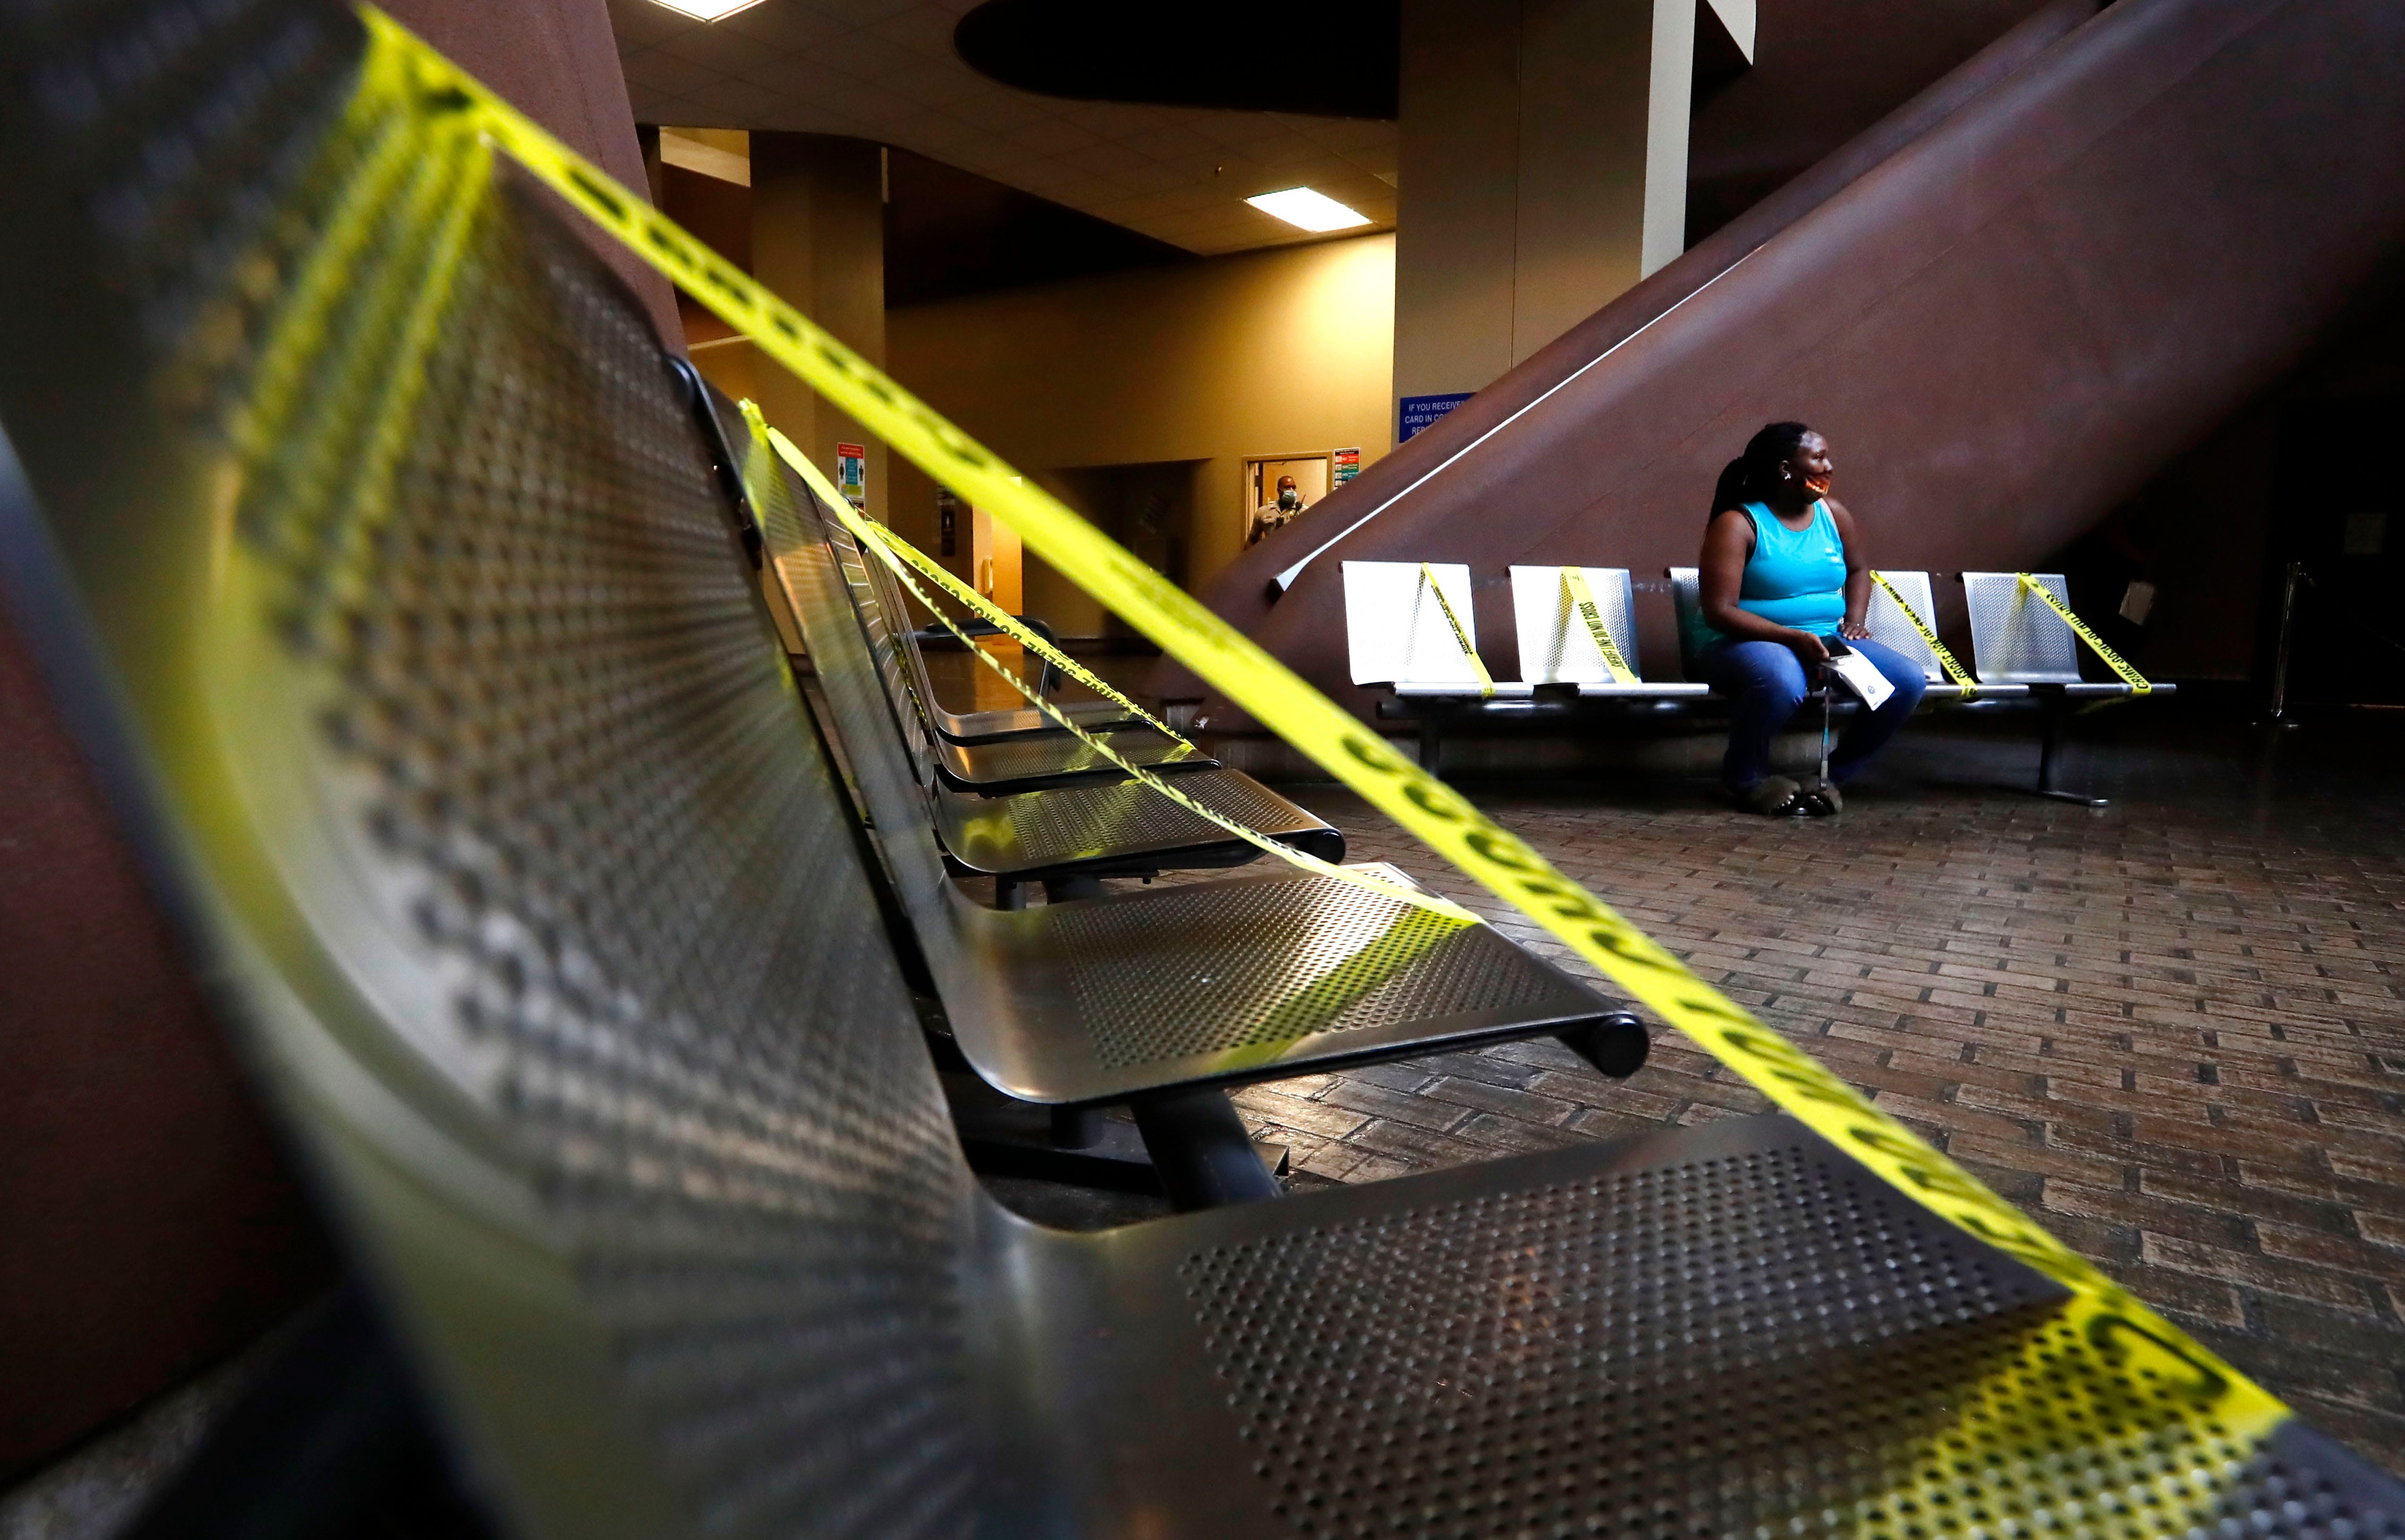 People file in to the lower floor where social distance markers seperate the waiting area seats at the Shelby County Courthouse just after 9am on Sept. 1, 2020.